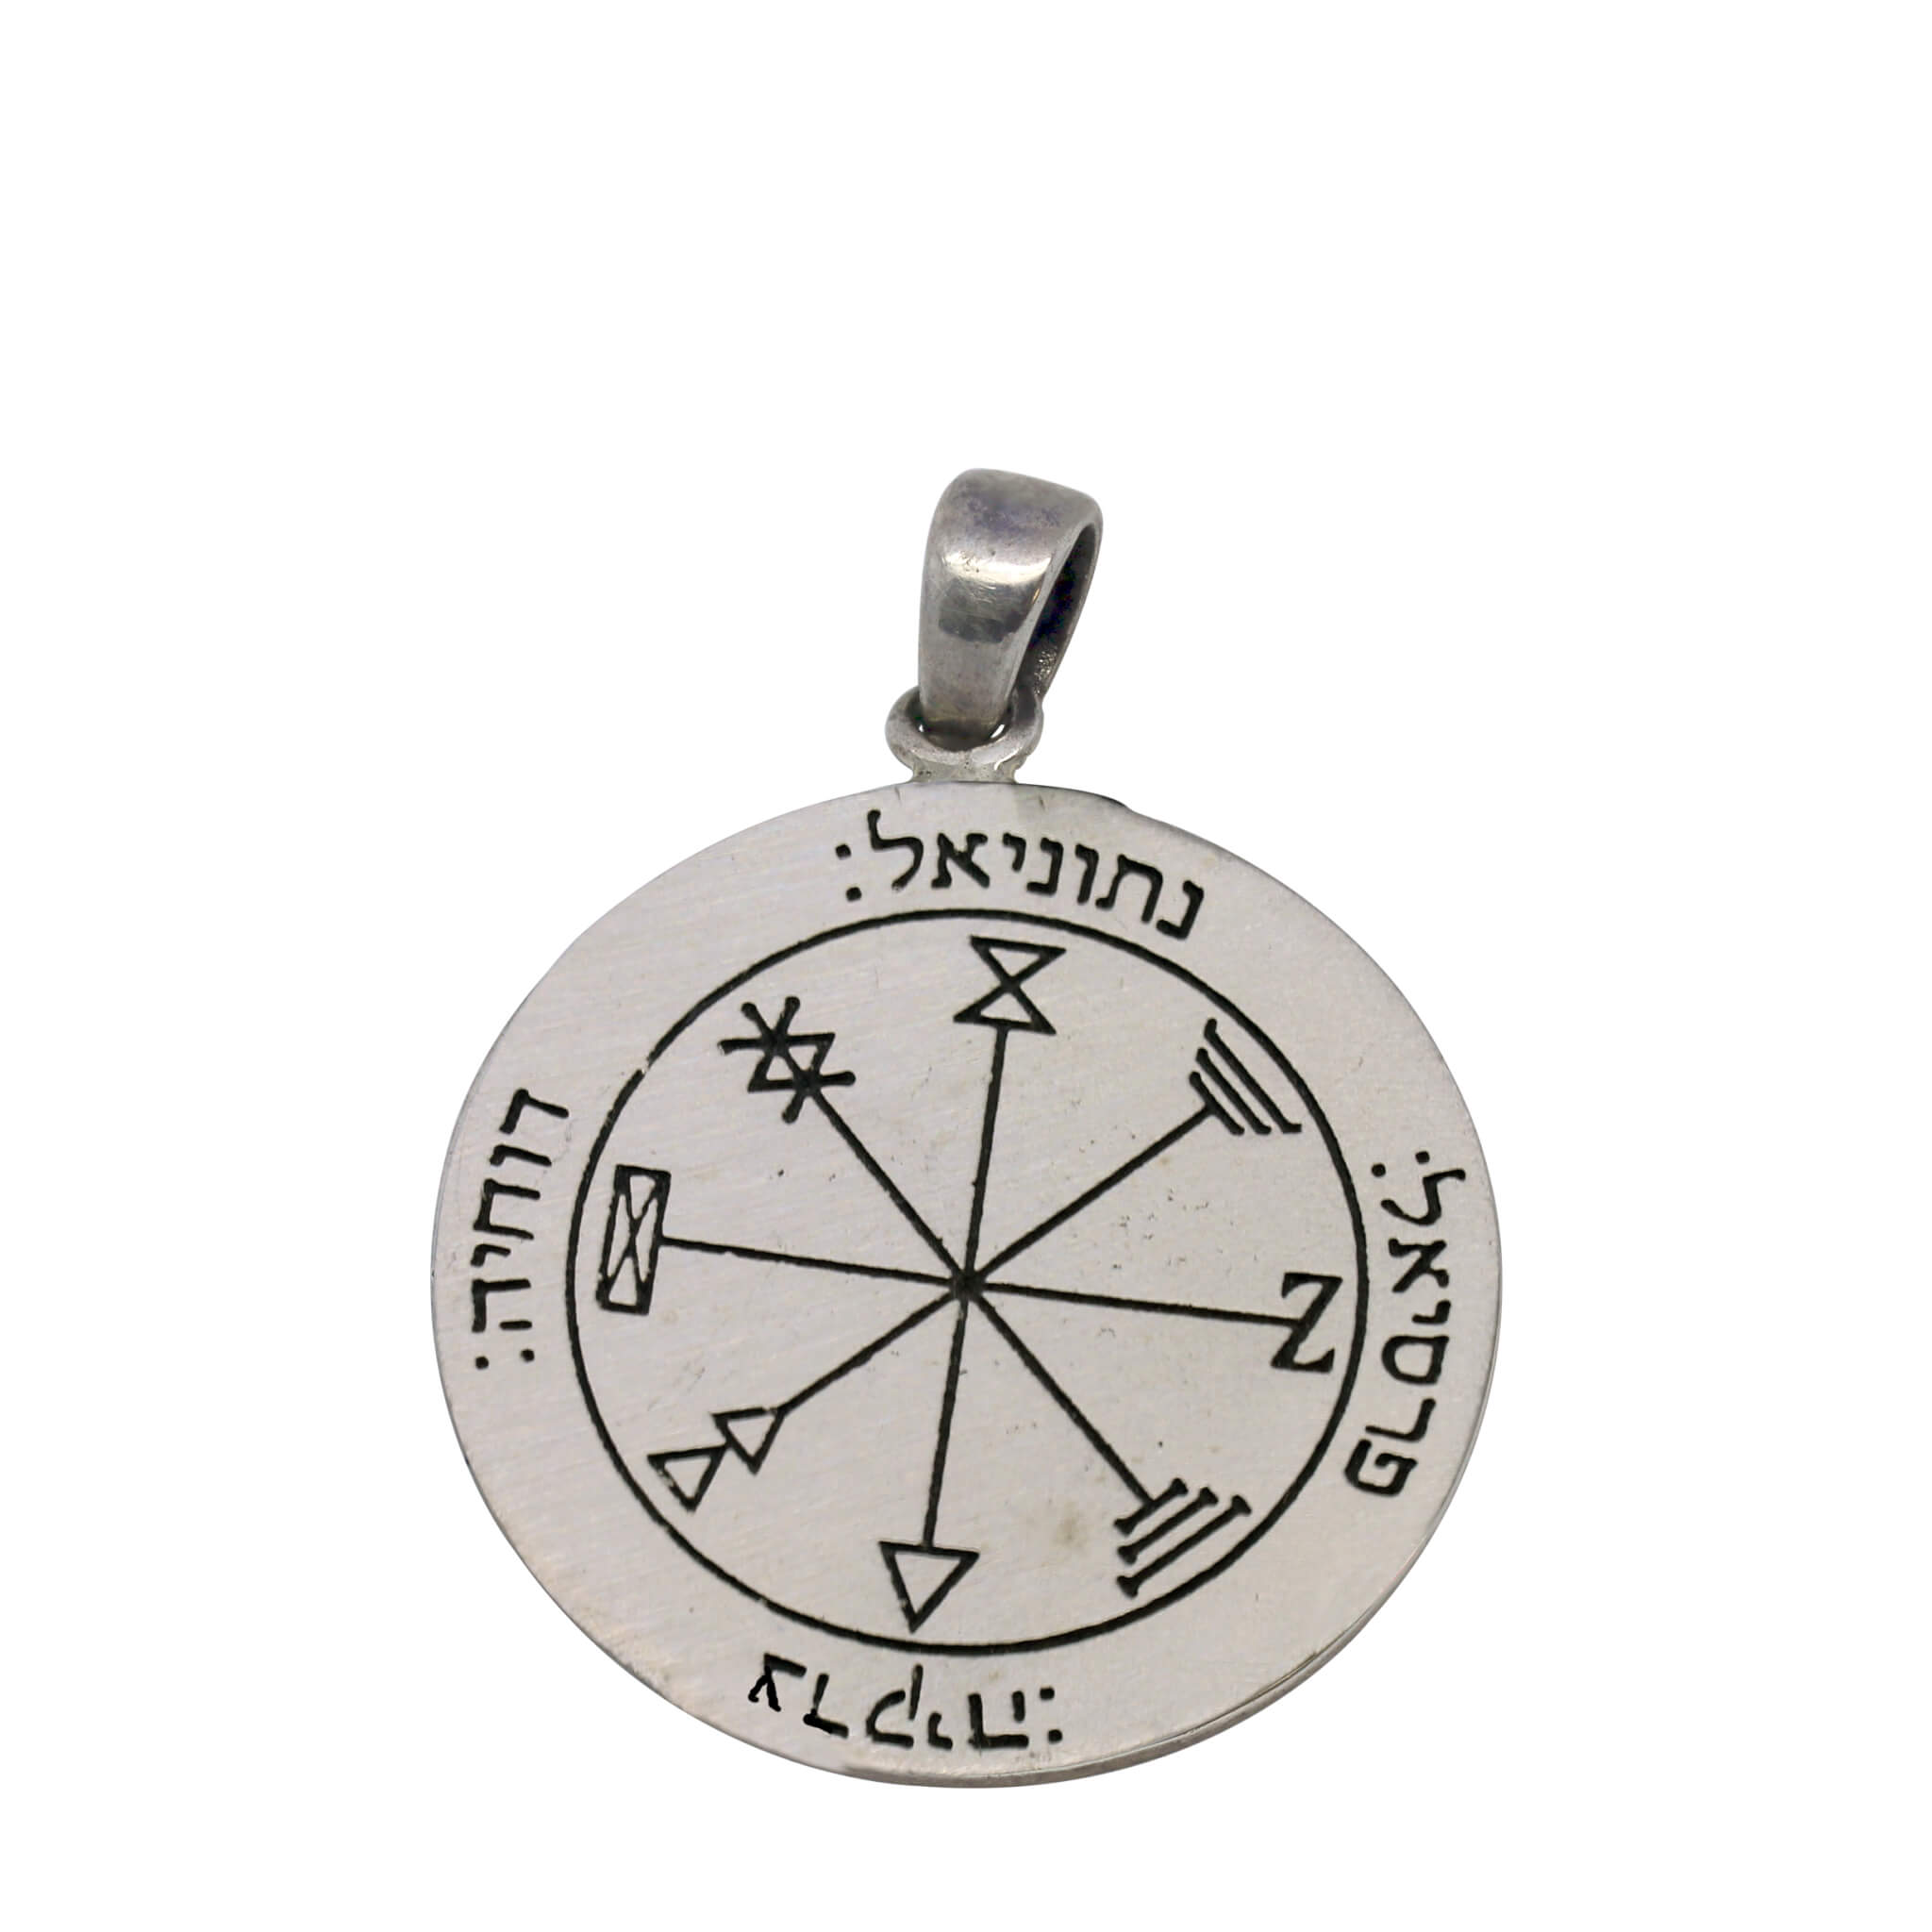 baptism yardenit solomon jewelry seal scripture in kabbalah silver profusion shop king seals pendant